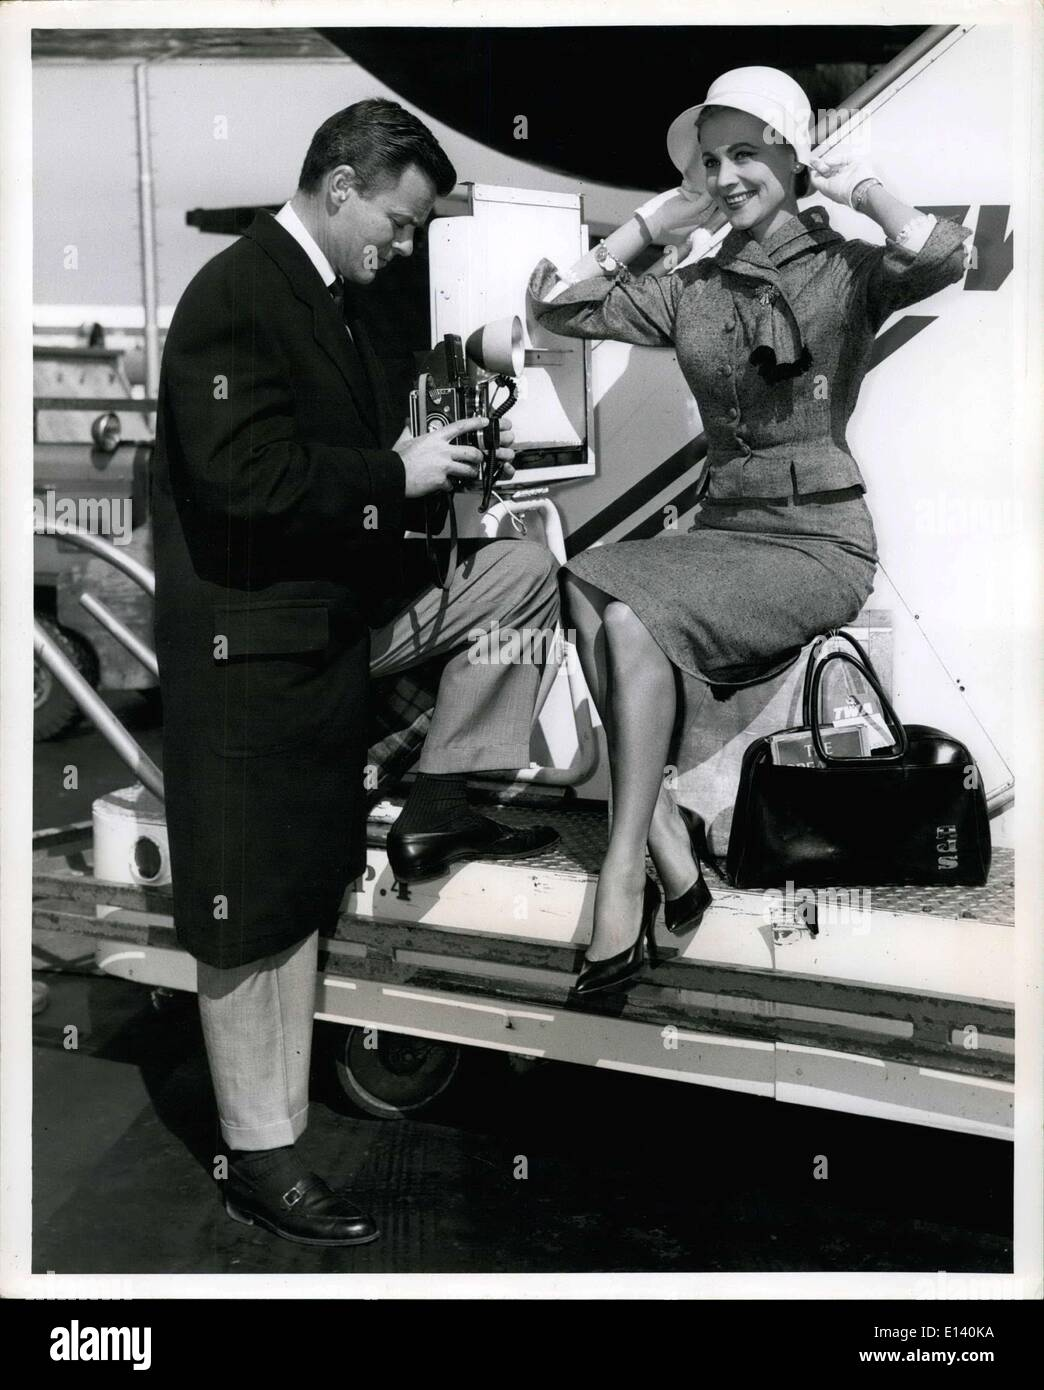 Mar. 31, 2012 - Anne Jeffreys Is The Pretty Subject For Her ''Photographer'' Husband, Robert Sterling, Prior To Boarding A TWA Flight To Los Angeles. The Popular TV And Screen Couple Are Returning From A Recent Tour Of Europe. - Stock Image